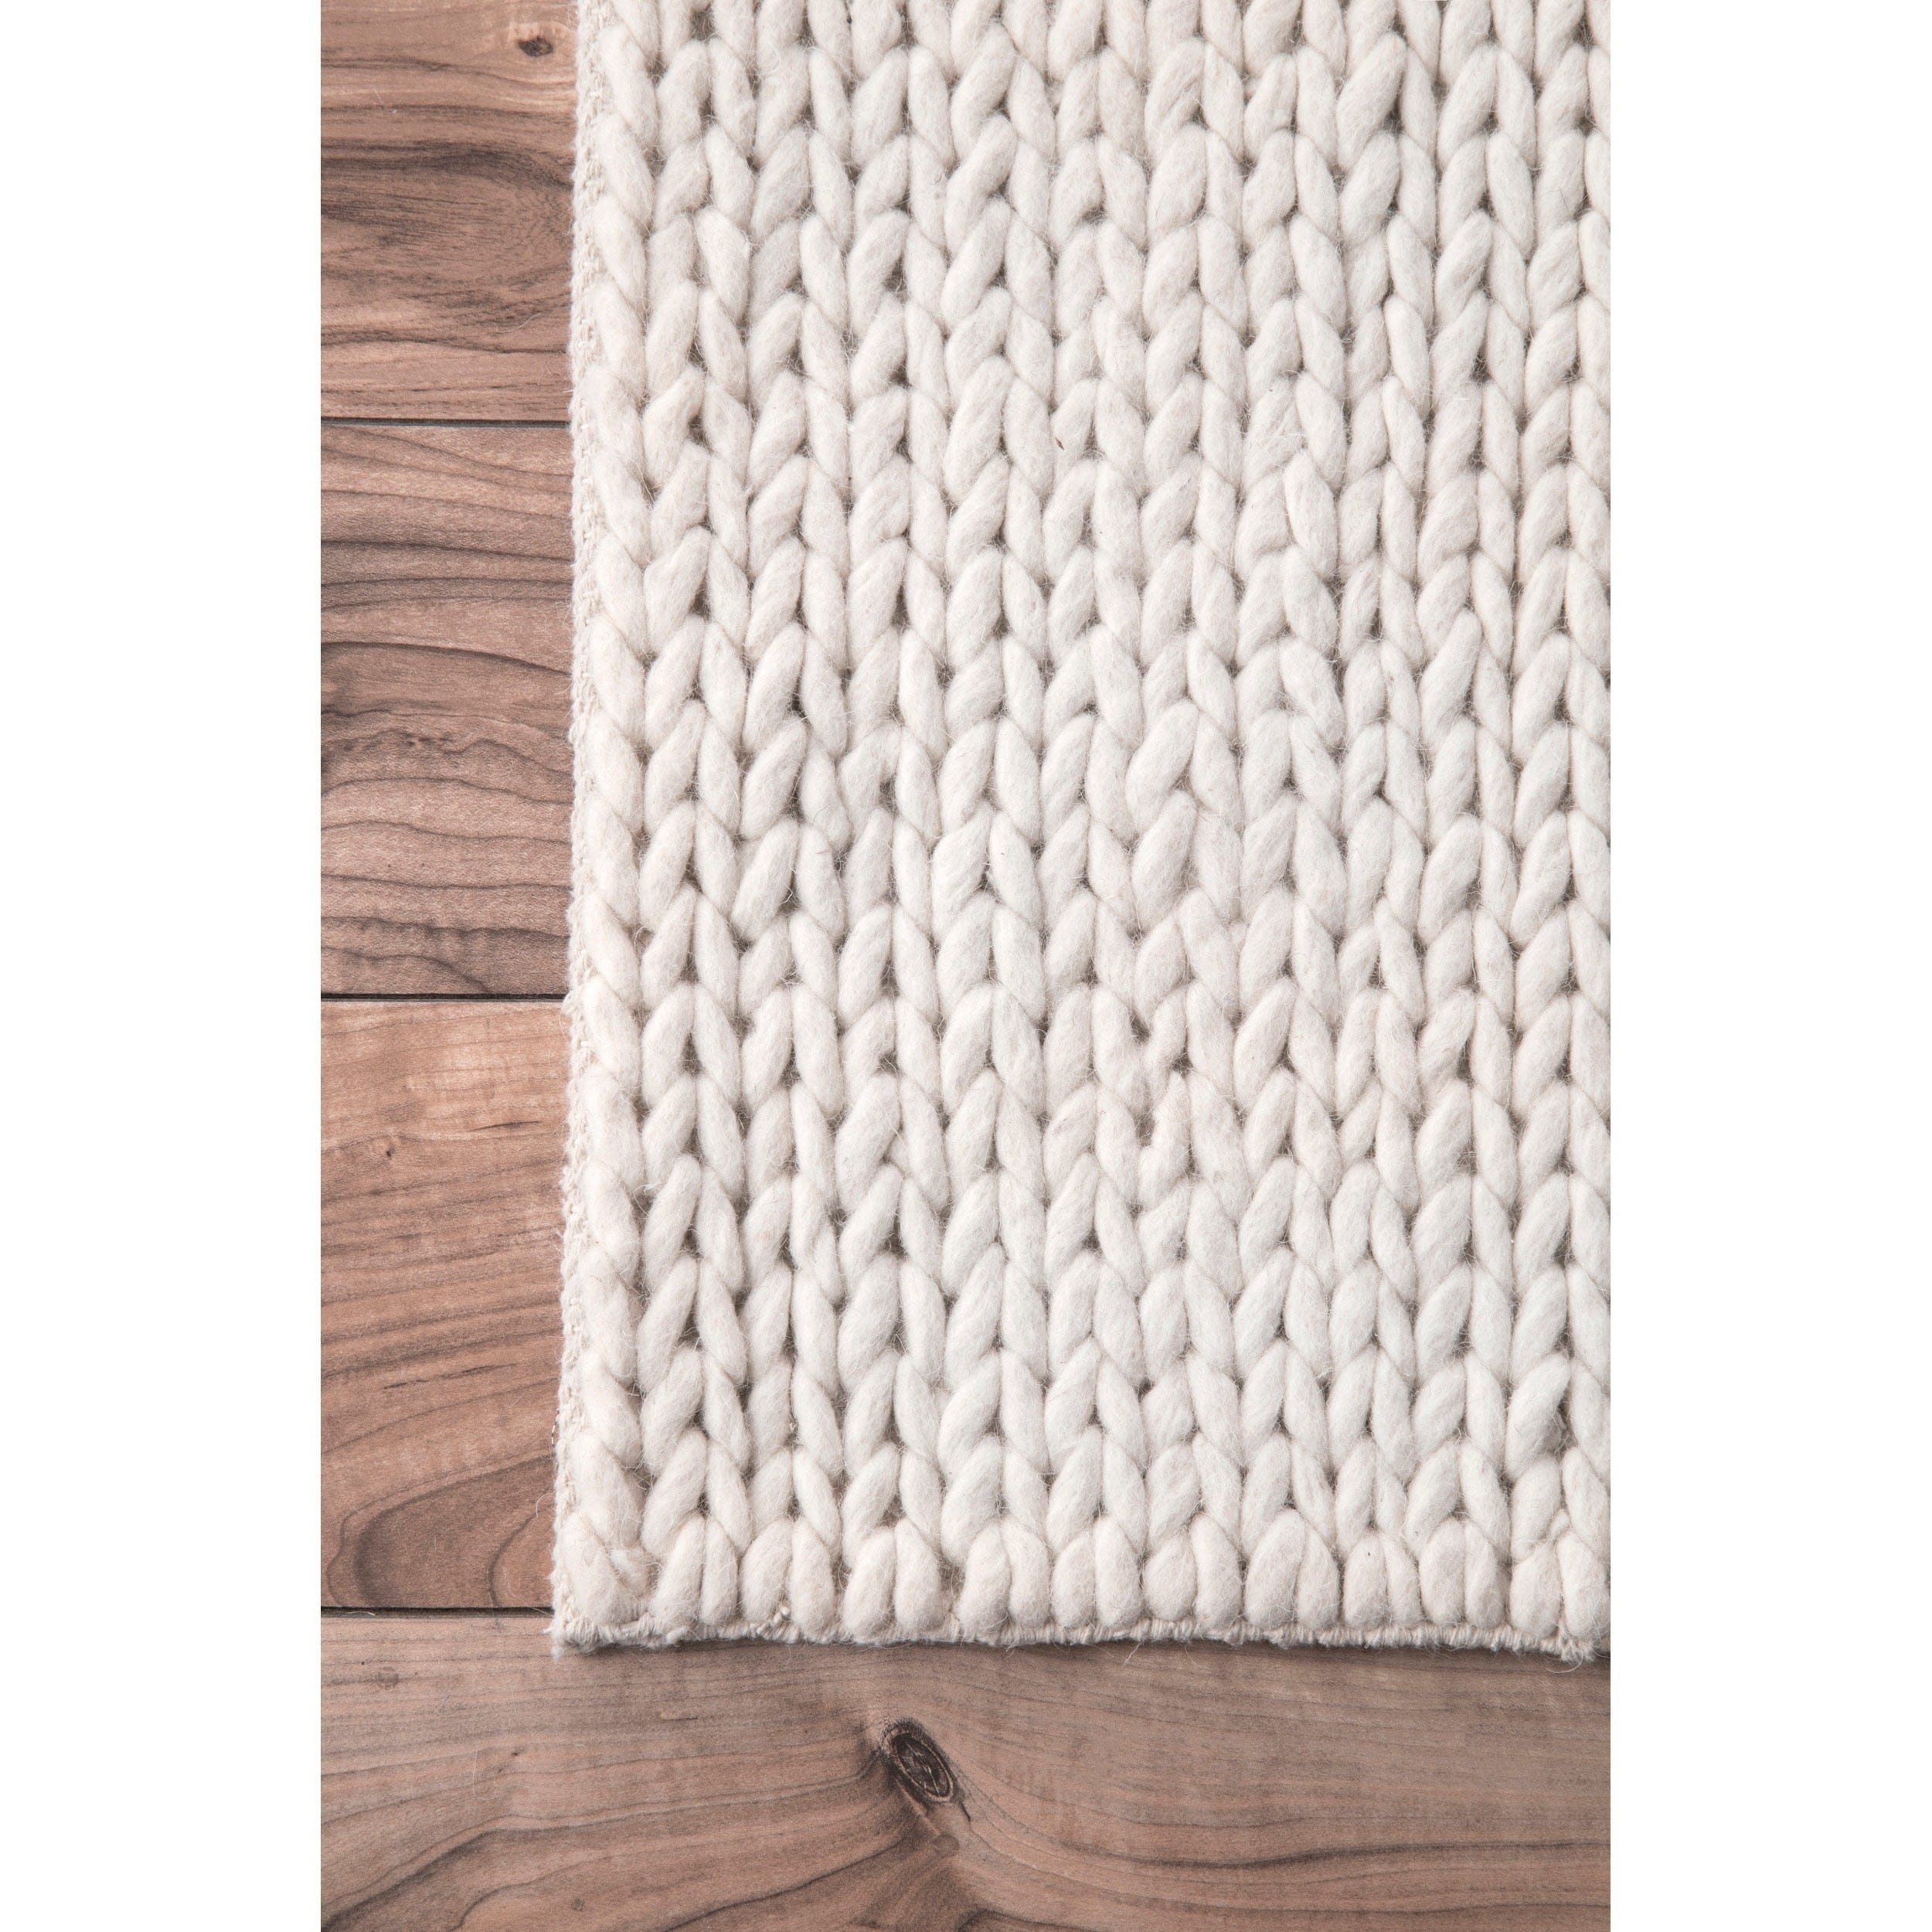 Nuloom Handmade Braided Cable White New Zealand Wool Rug 8 X 10 Free Shipping Today 13524401